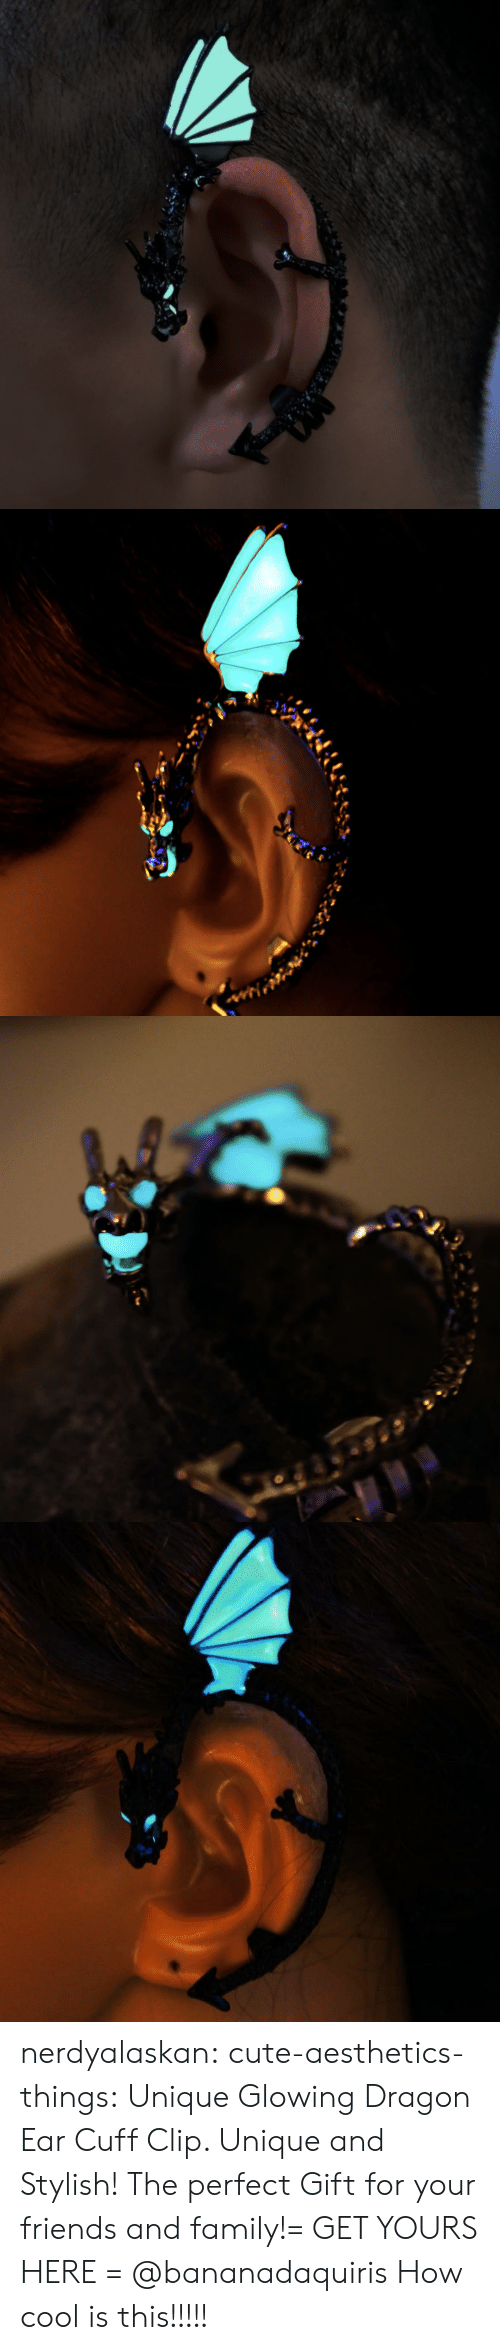 Stylish: nerdyalaskan:  cute-aesthetics-things:  Unique GlowingDragon Ear Cuff Clip. Unique and Stylish! The perfect Gift for your friends and family!= GET YOURS HERE =  @bananadaquiris  How cool is this!!!!!